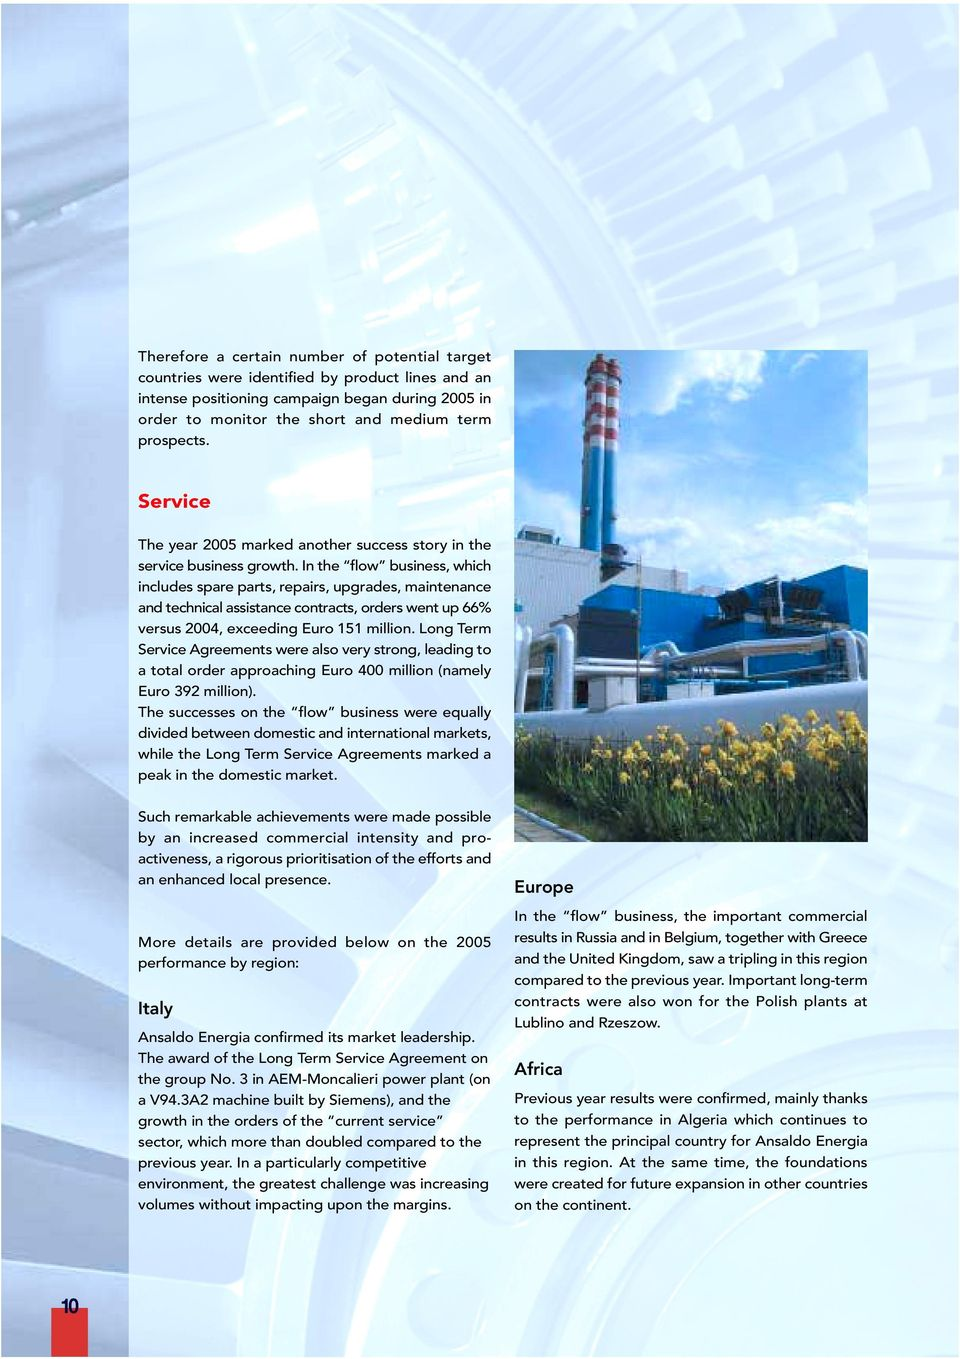 A Finmeccanica Company Annual Report Pdf Old Electrical Equipment Volex 3 Piece Ceiling Rose In The Flow Business Which Includes Spare Parts Repairs Upgrades Maintenance And